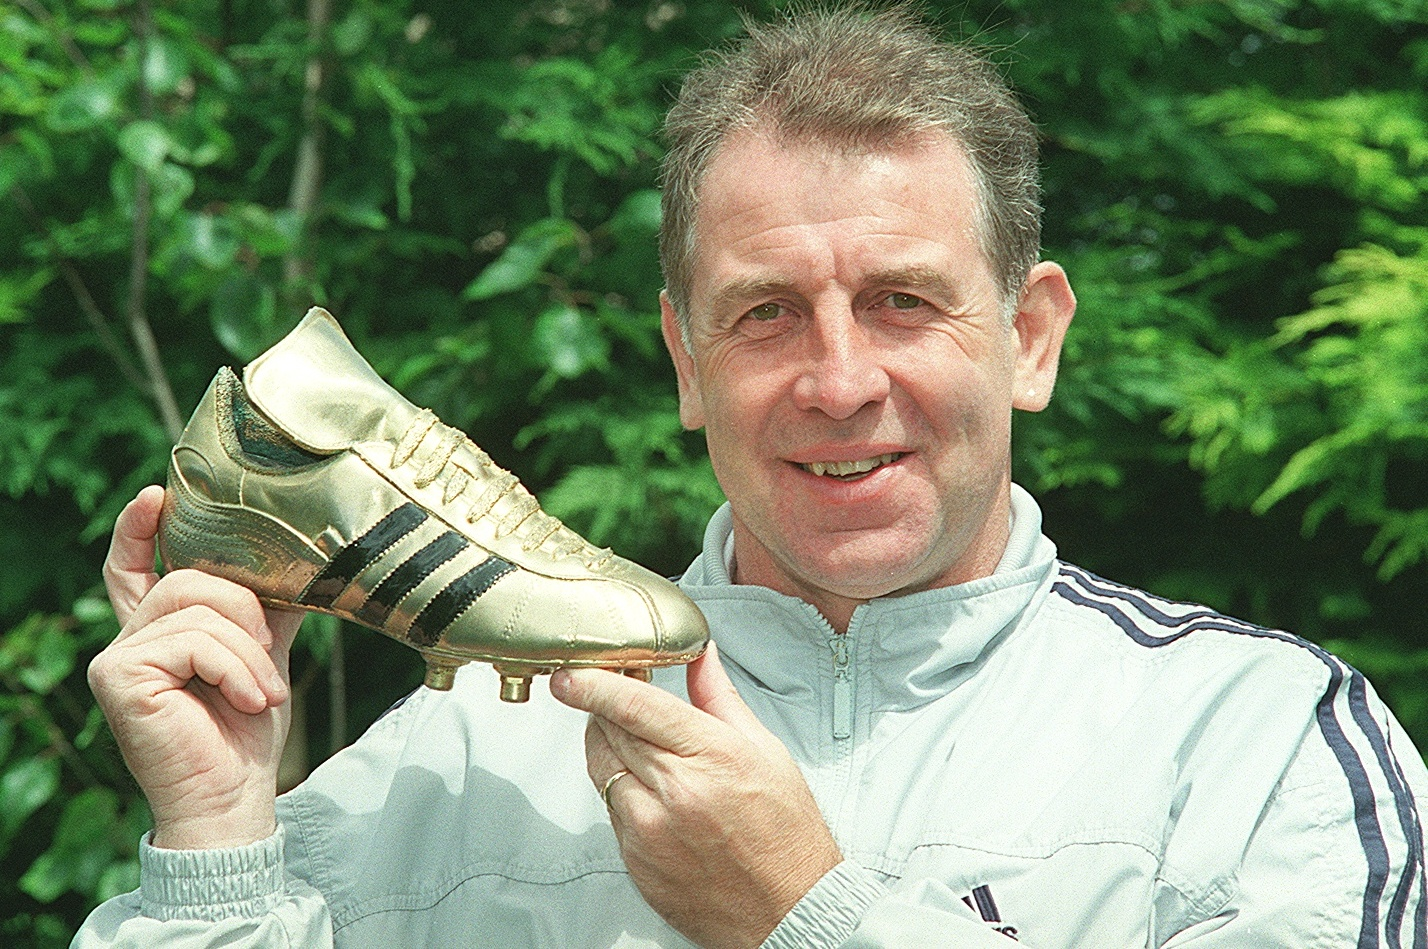 Gerry Armstrong with the golden boot he received as best British player at the 1982 World Cup